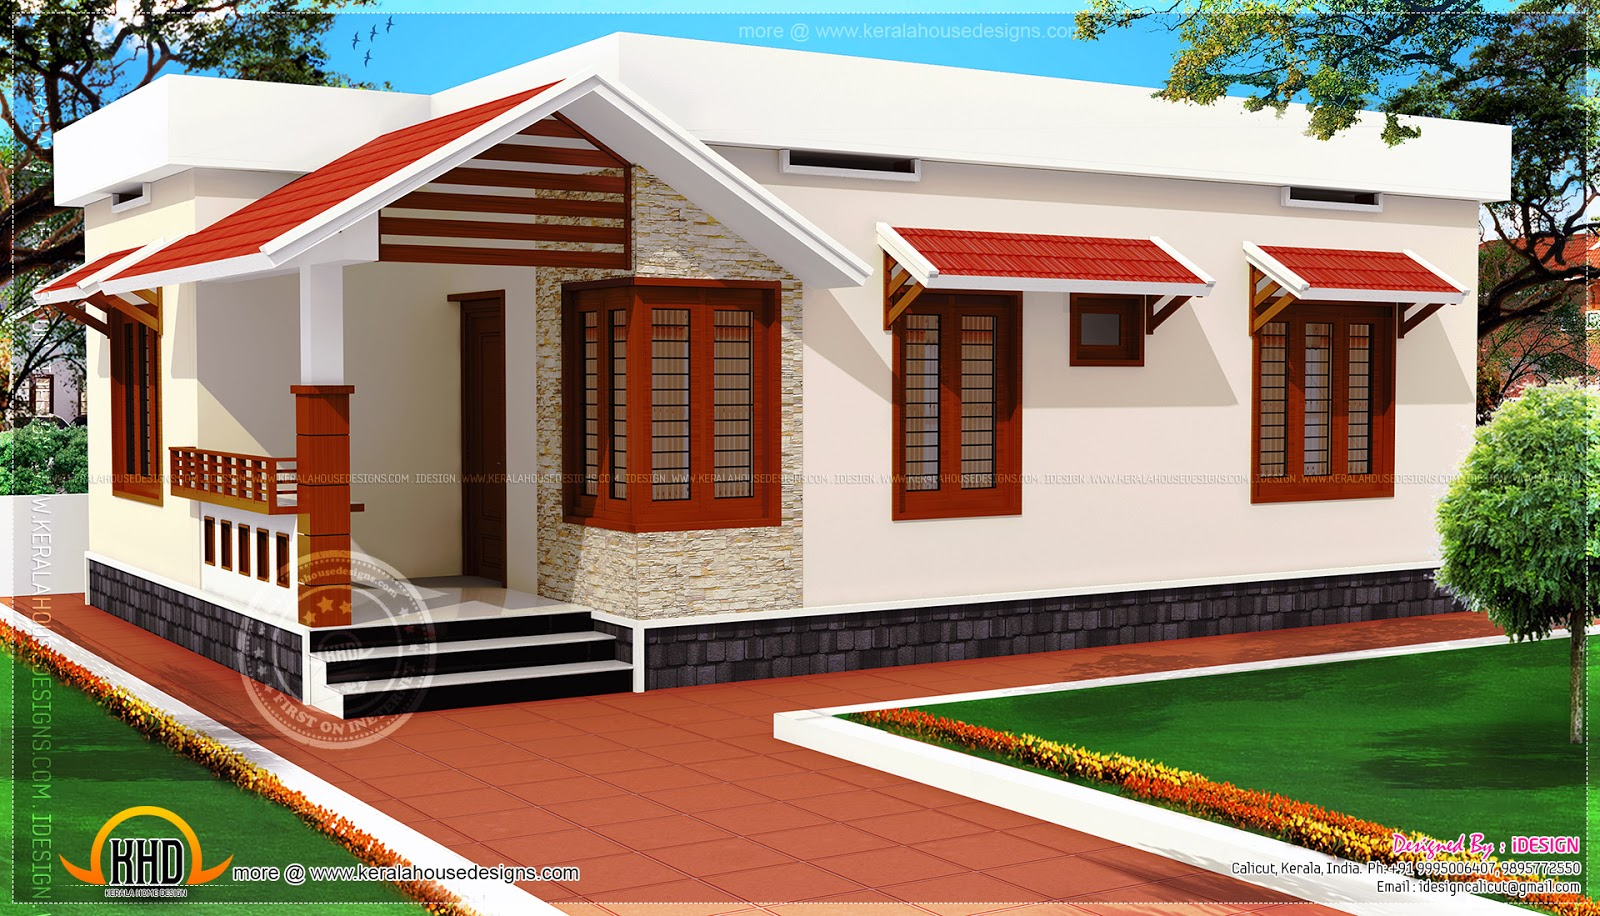 Low cost kerala home design in 730 square feet kerala for Low cost home plan